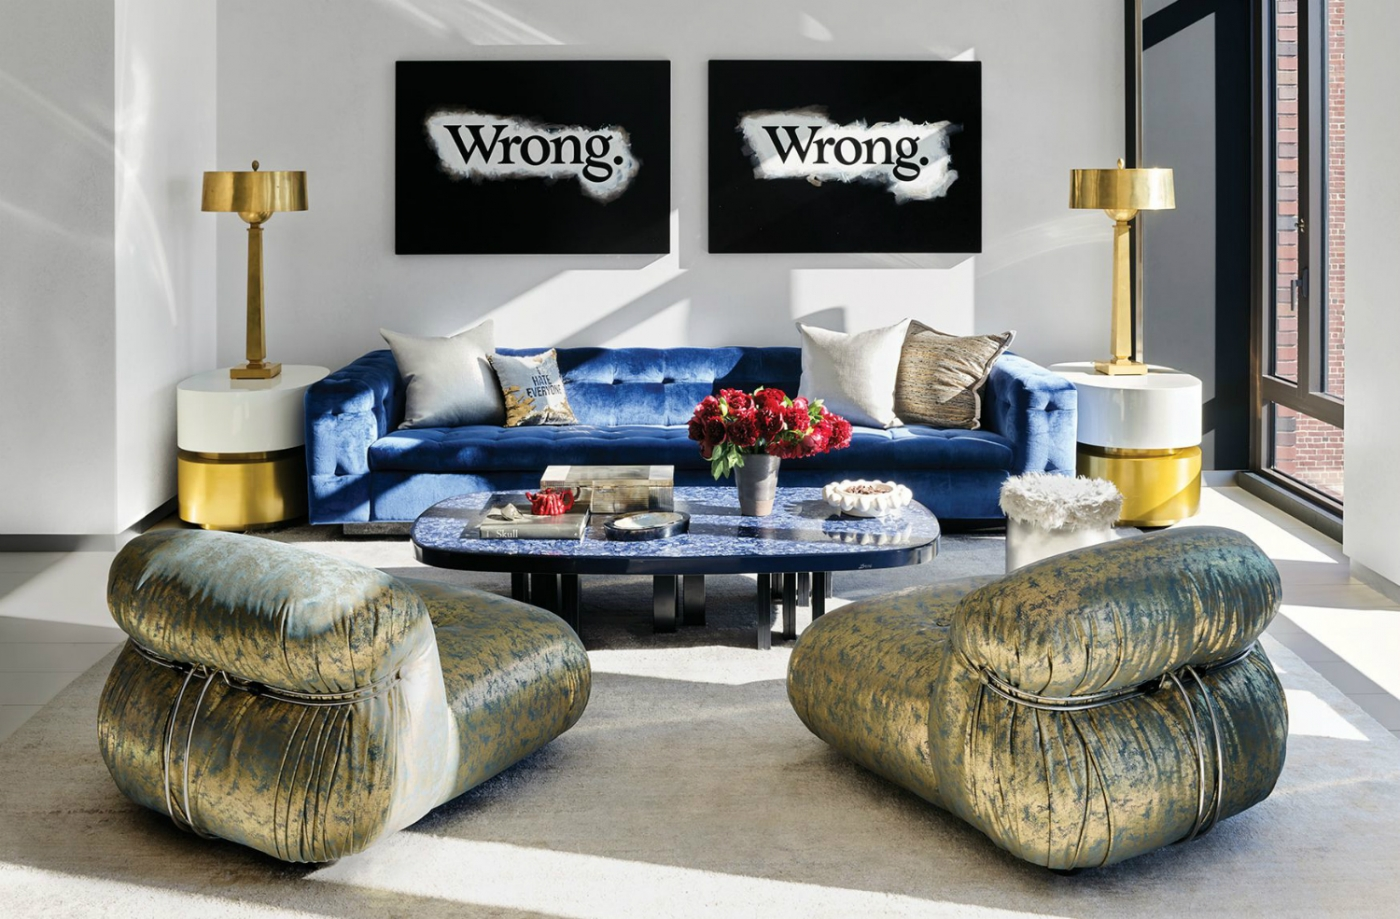 interior design project Uptown Glamour Meets Downtown NYC: A Bold Interior Design Project Uptown Glamour Meets Downtown NYC A Bold Interior Design feature 1400x919